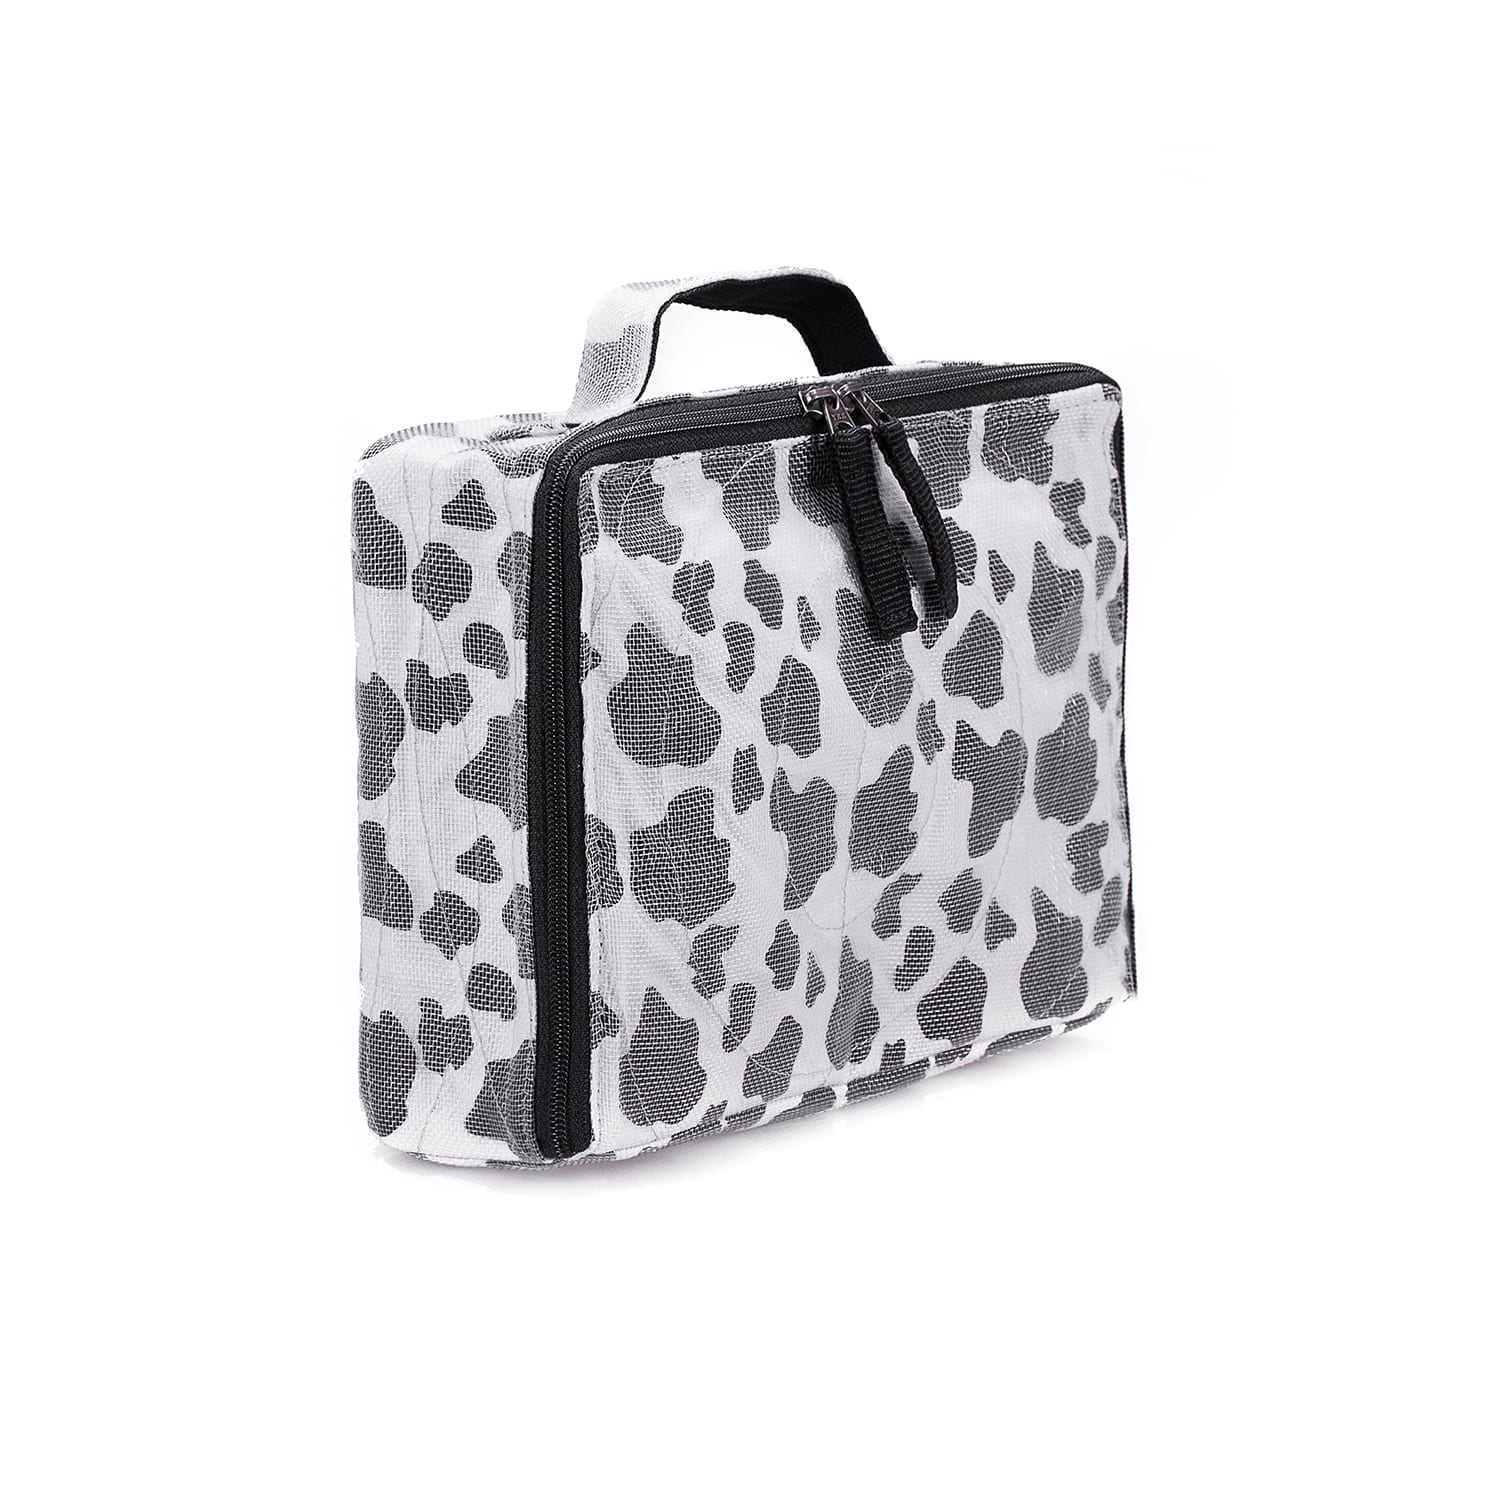 User - Accessories case - Black and white spotted